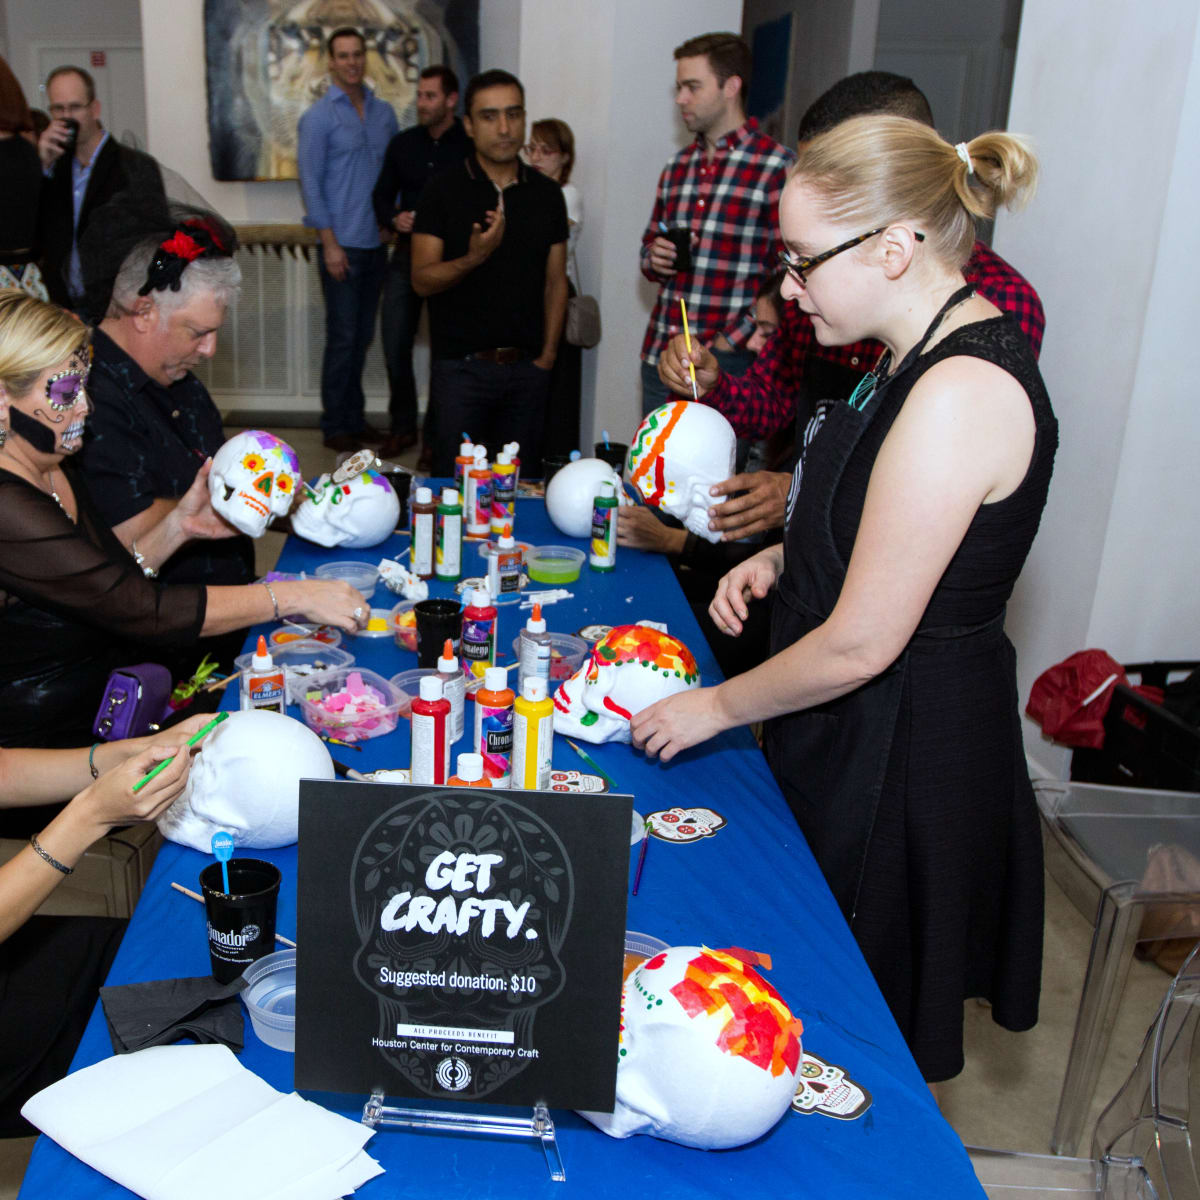 Houston, CultureMap Day of the Dead party, October 2015, craft station